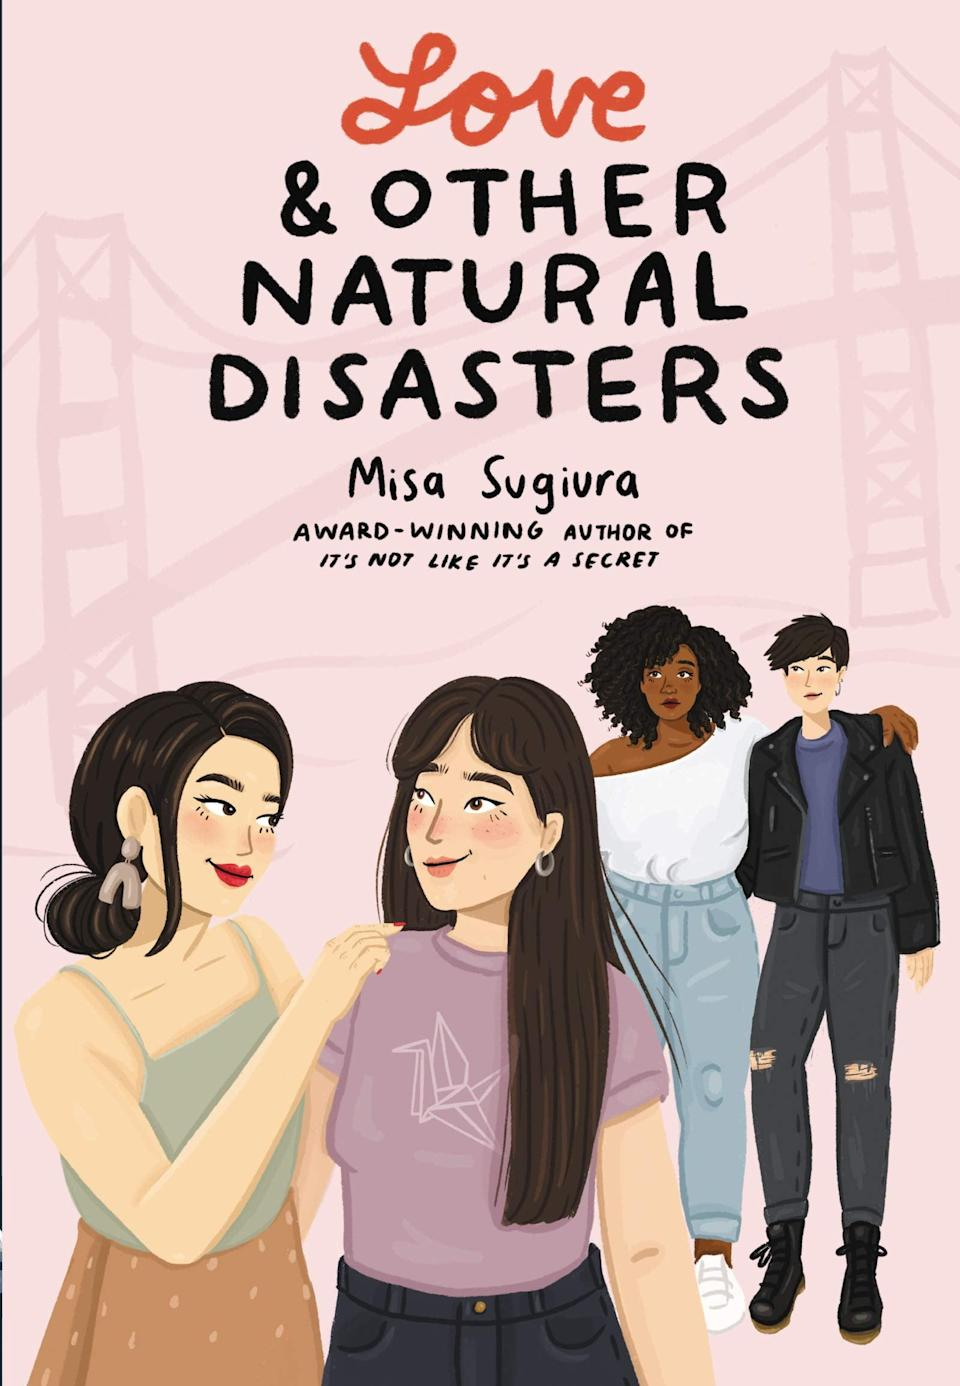 <p><span><strong>Love and Other Natural Disasters</strong></span> by Misa Sugiura is a warm-hearted queer rom-com with a fake dating plotline that will leave you grinning. Nozomi Nagai wasn't looking for a fake summer romance, but she embraces her role as Willow's new girlfriend in order to make Willow's ex jealous. But Misa might just have an ulterior motive in mind: to make Willow see that she's the perfect girl for her (for real). </p> <p><em>Out June 8</em></p>